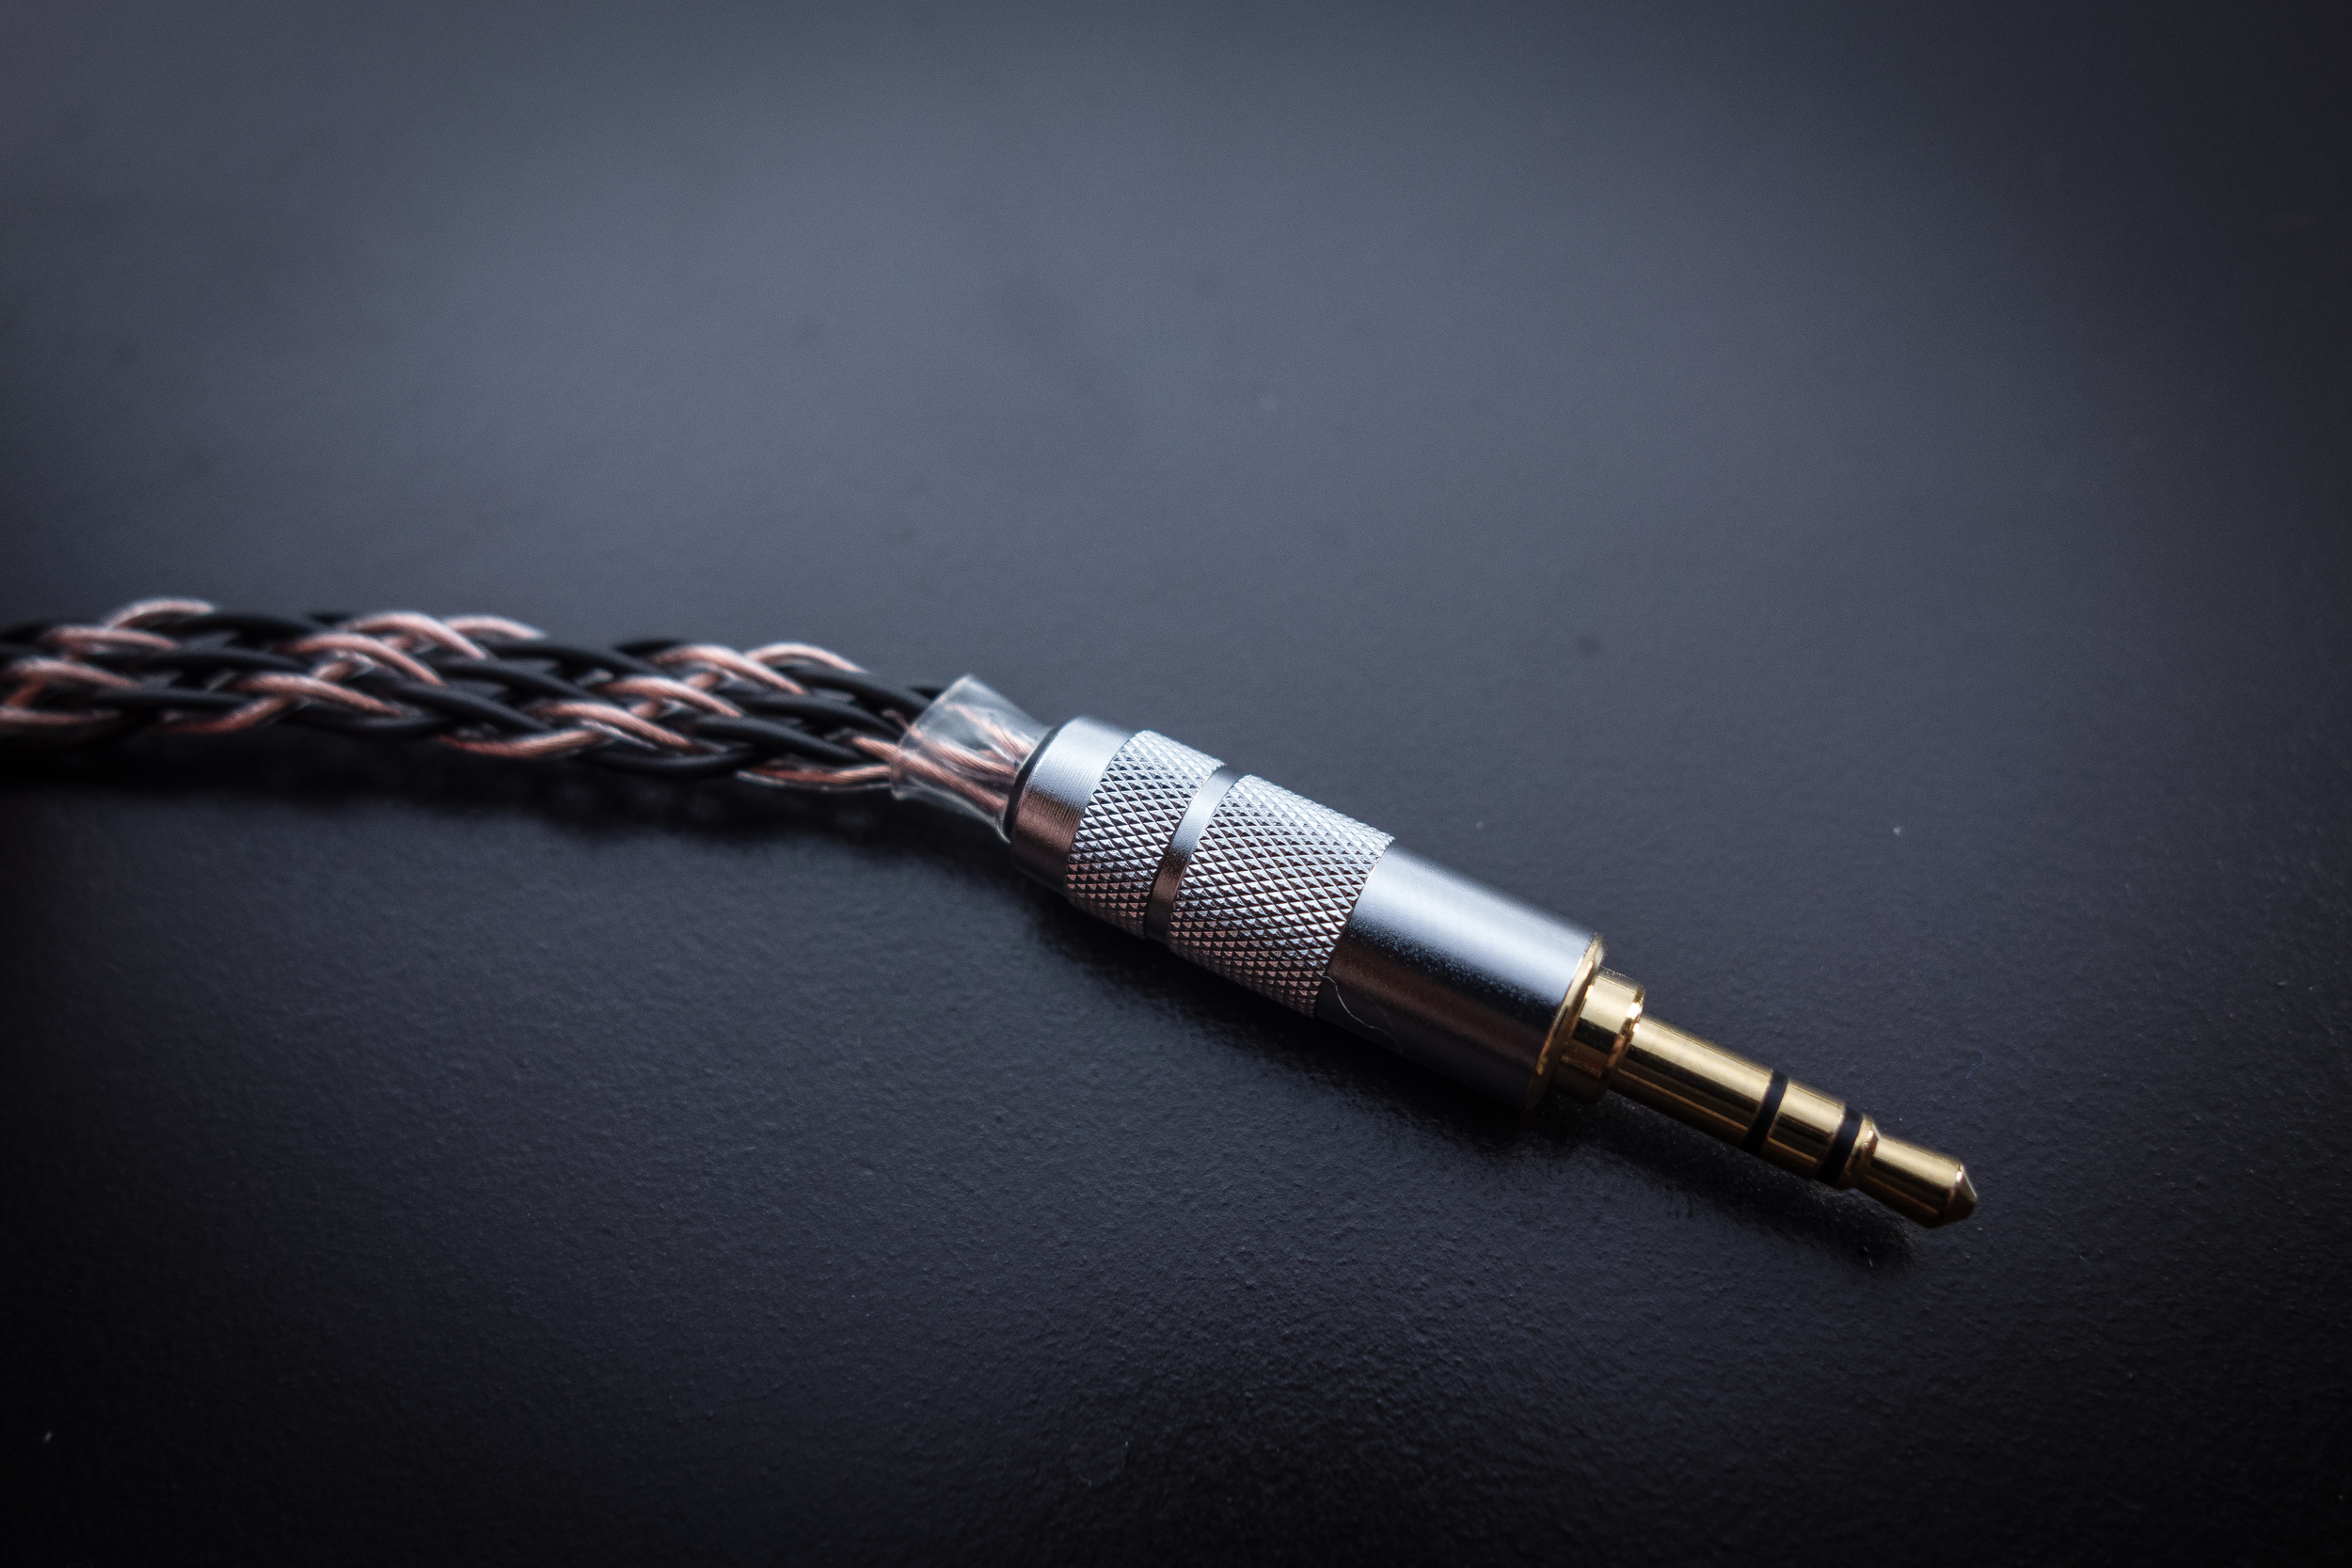 Labkable takumi custom headphone cable review